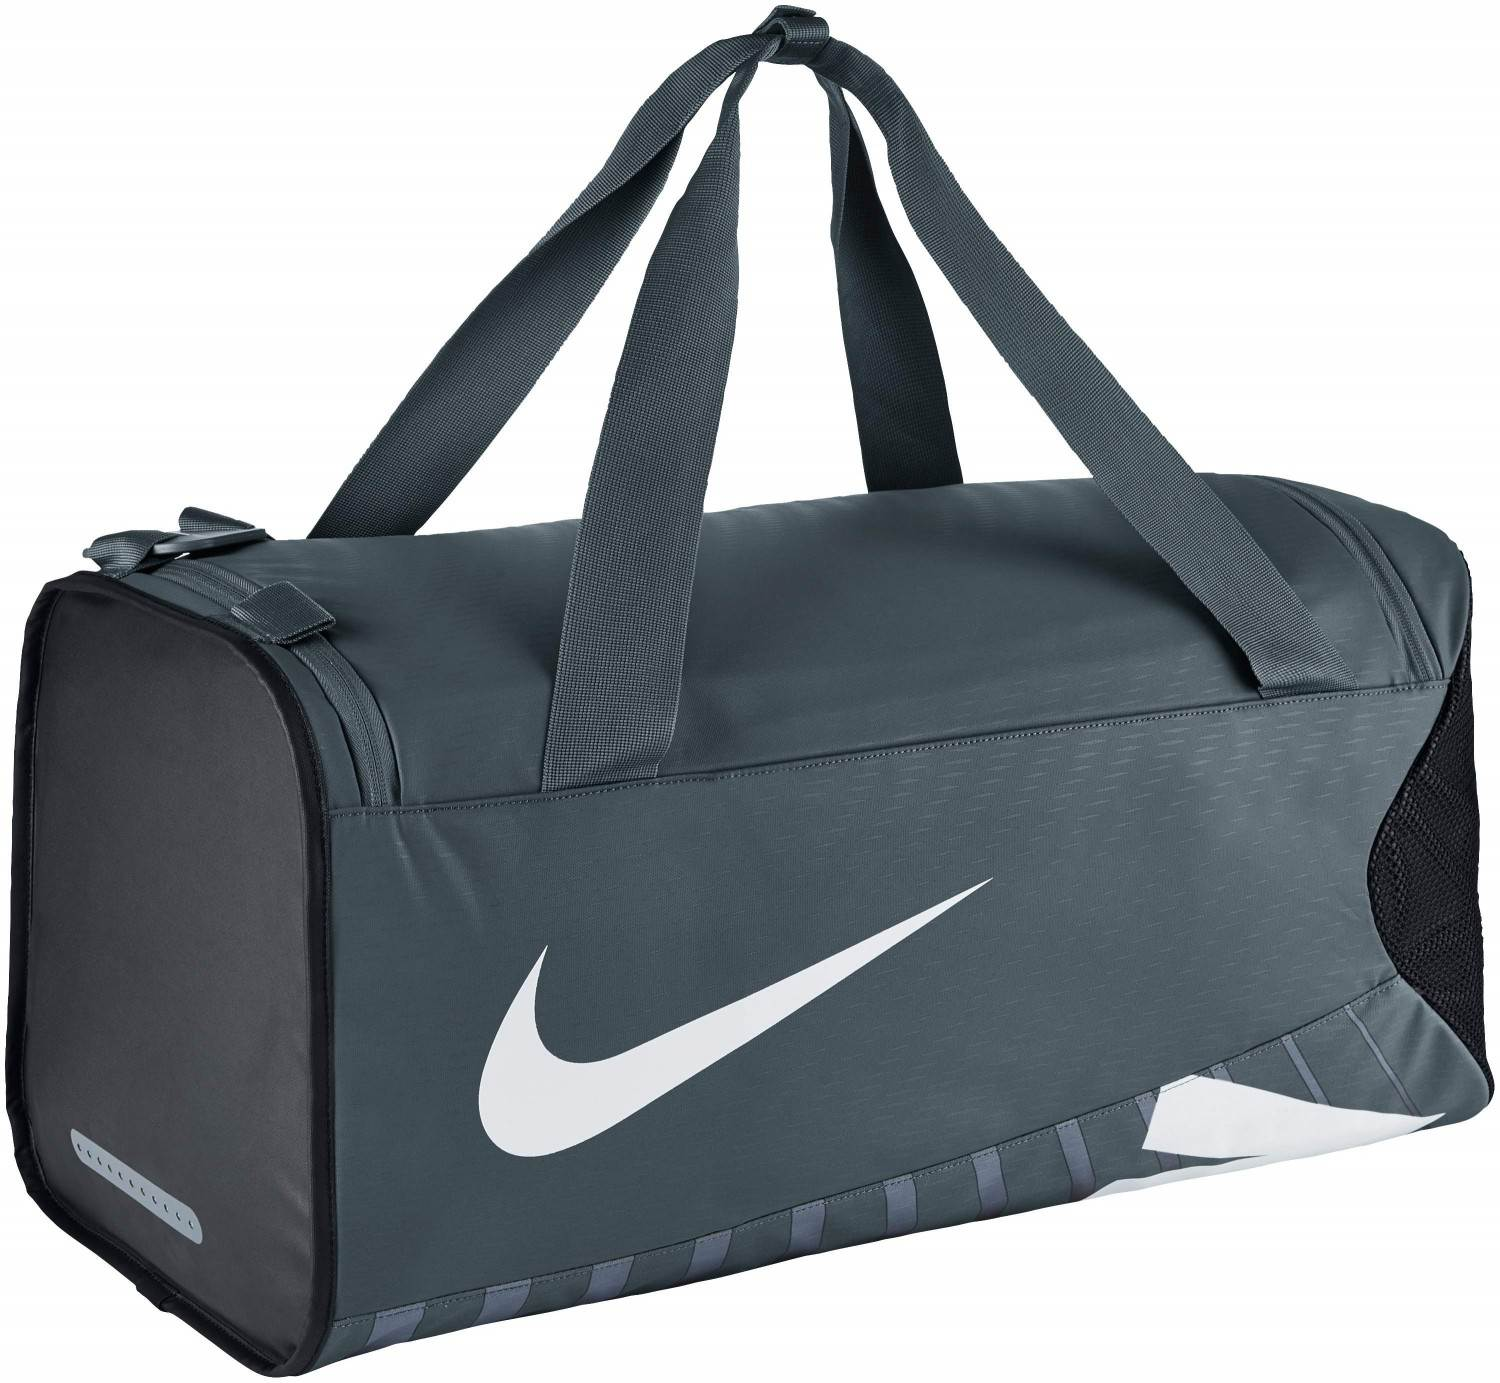 nike-duffel-medium-sporttasche-farbe-064-flint-grey-black-white-